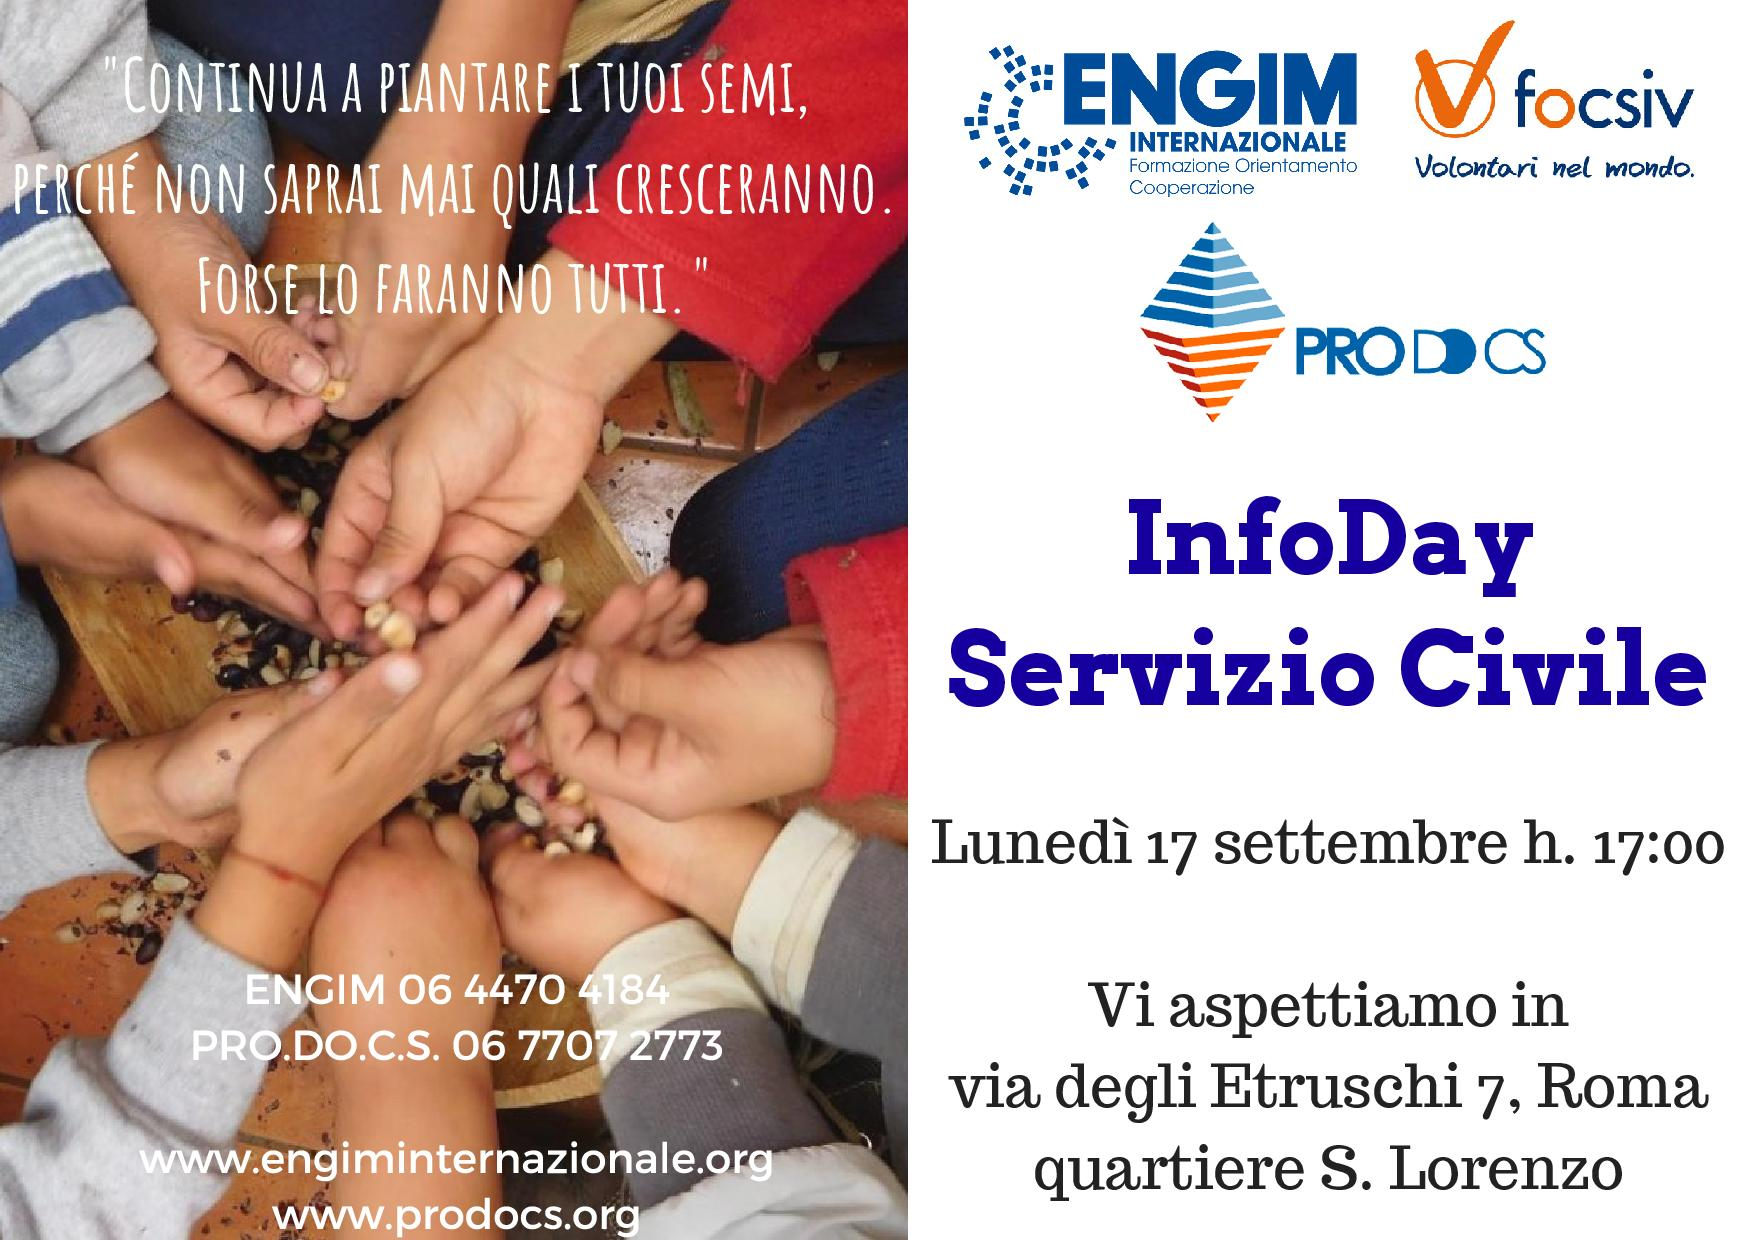 Infoday 17 settembre con PRO.DO.C.S.